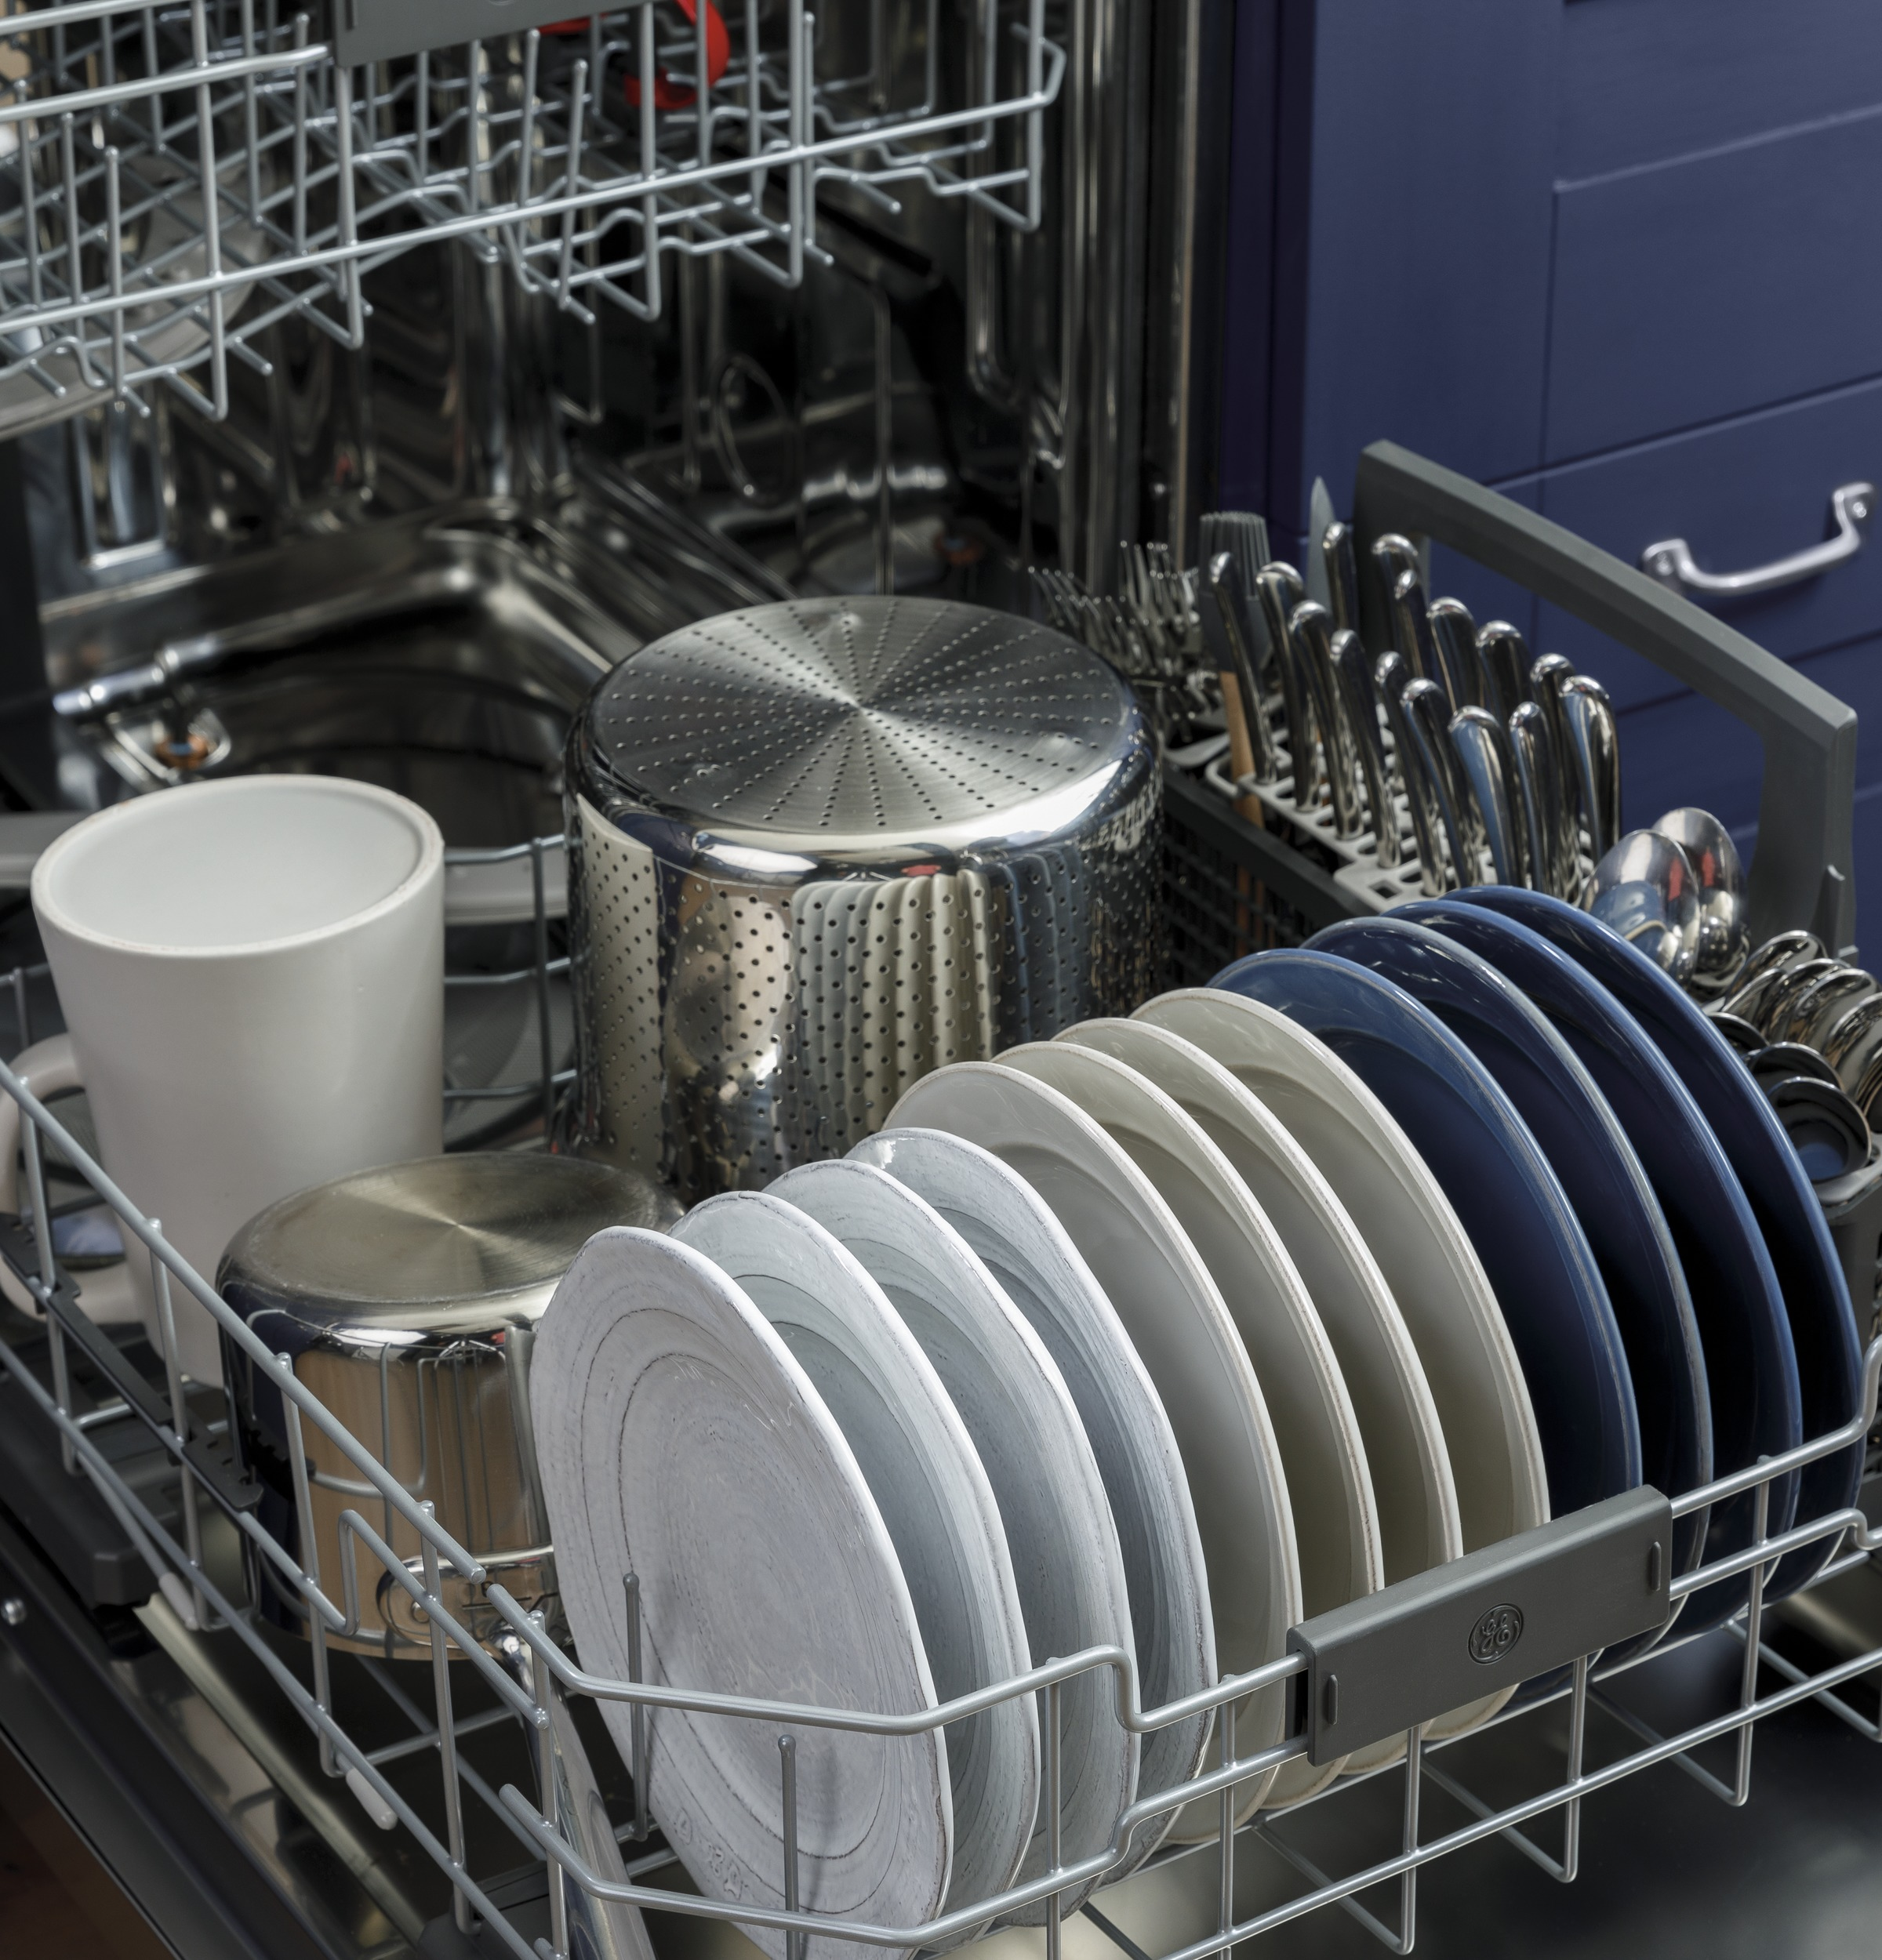 Model: GDF645SGNWW | GE GE® Front Control with Stainless Steel Interior Dishwasher with Sanitize Cycle & Dry Boost